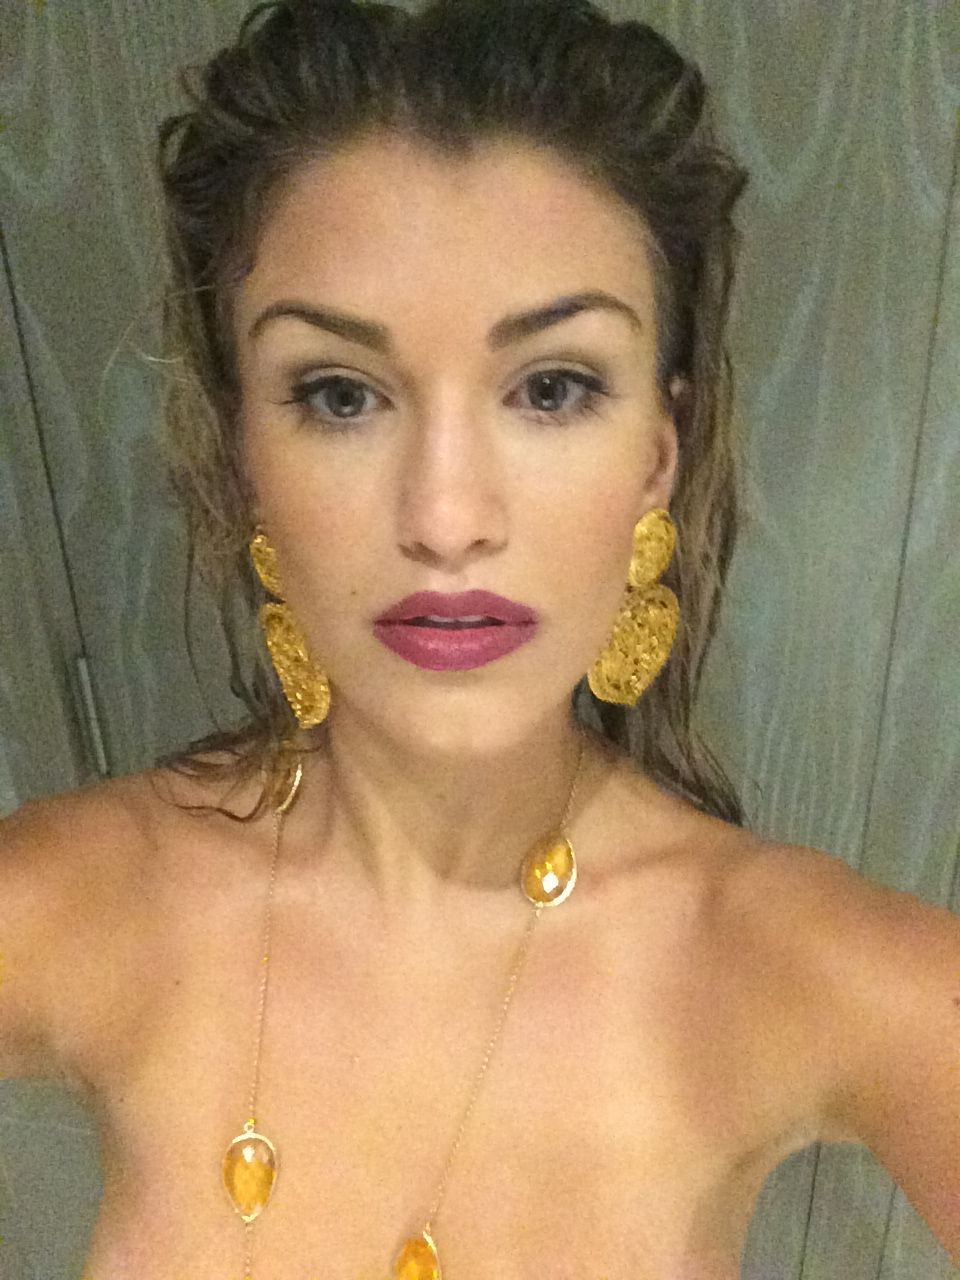 Amy Willerton Tits amy willerton leaked icloud – the fappening (6 photos